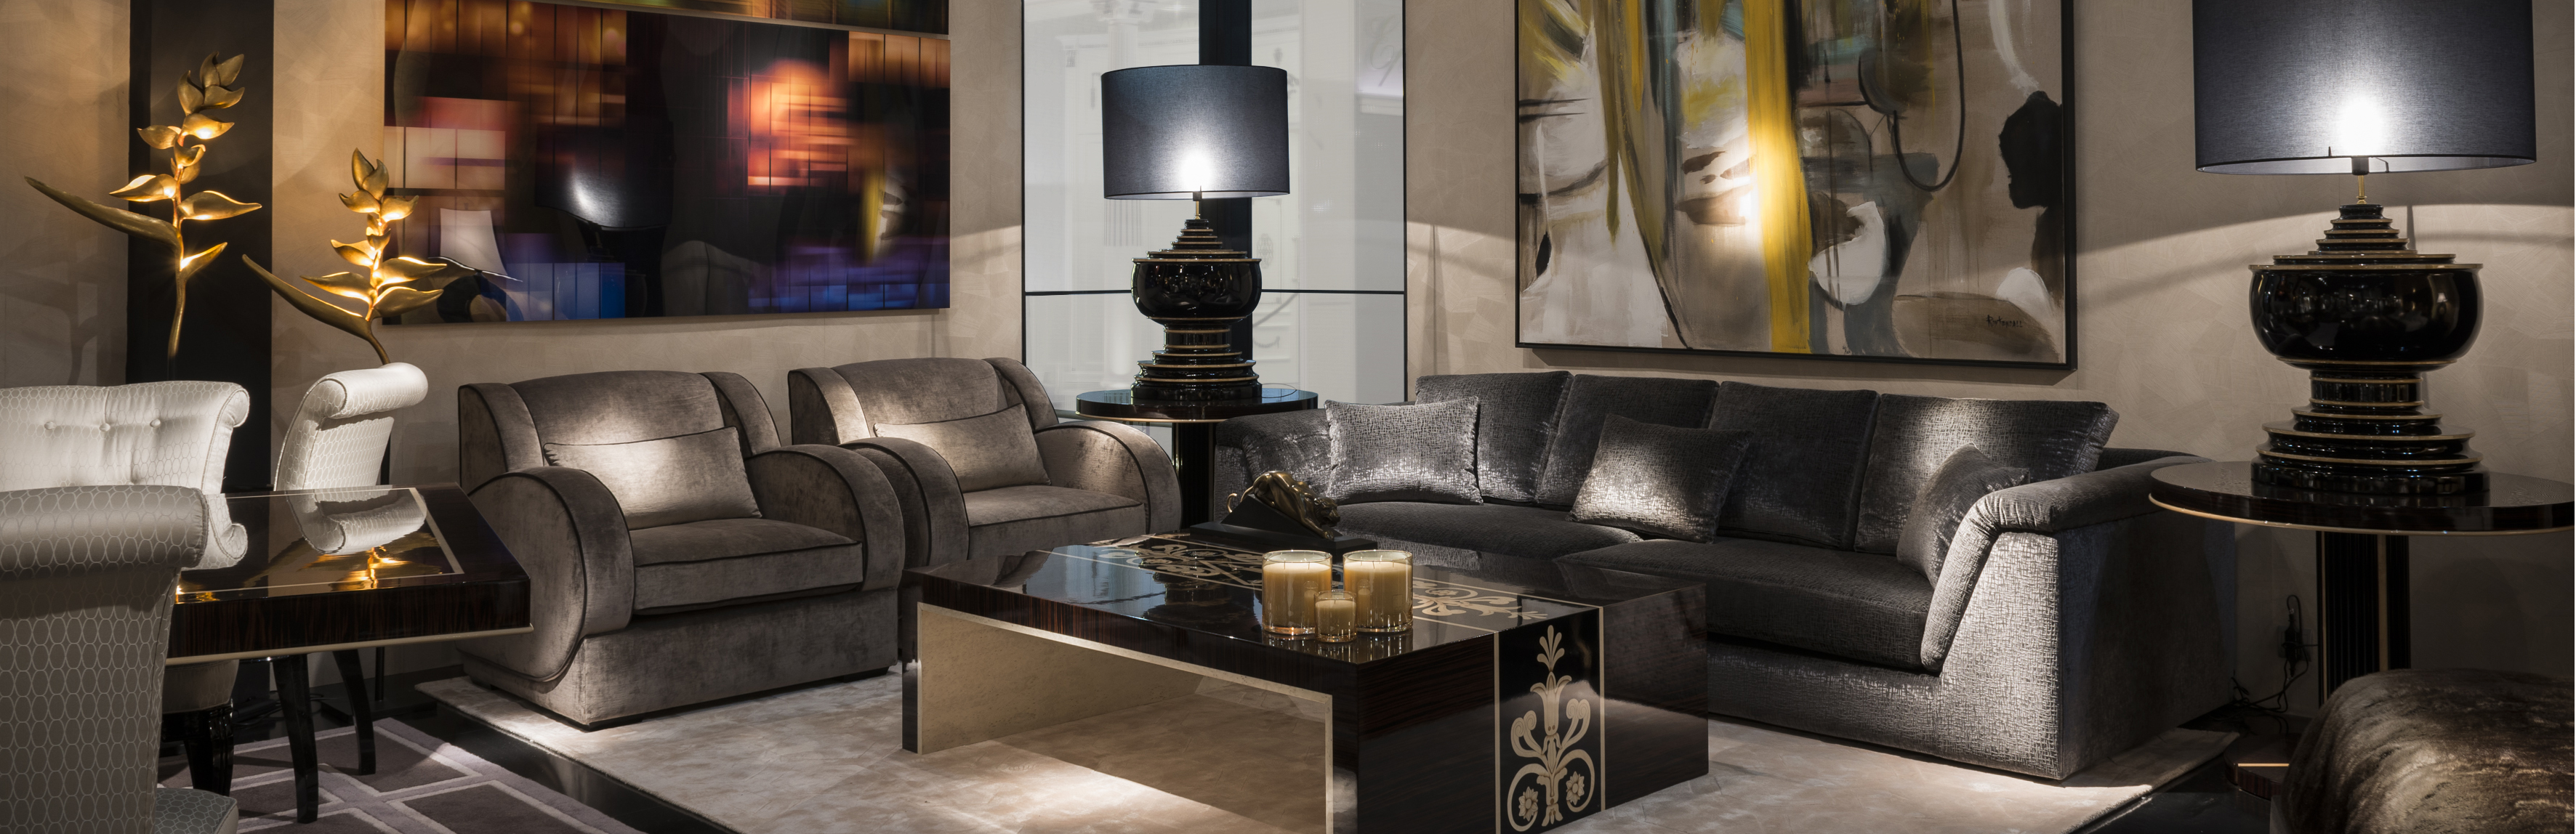 LUXURY FURNITURE HANDCRAFTED IN SPAIN